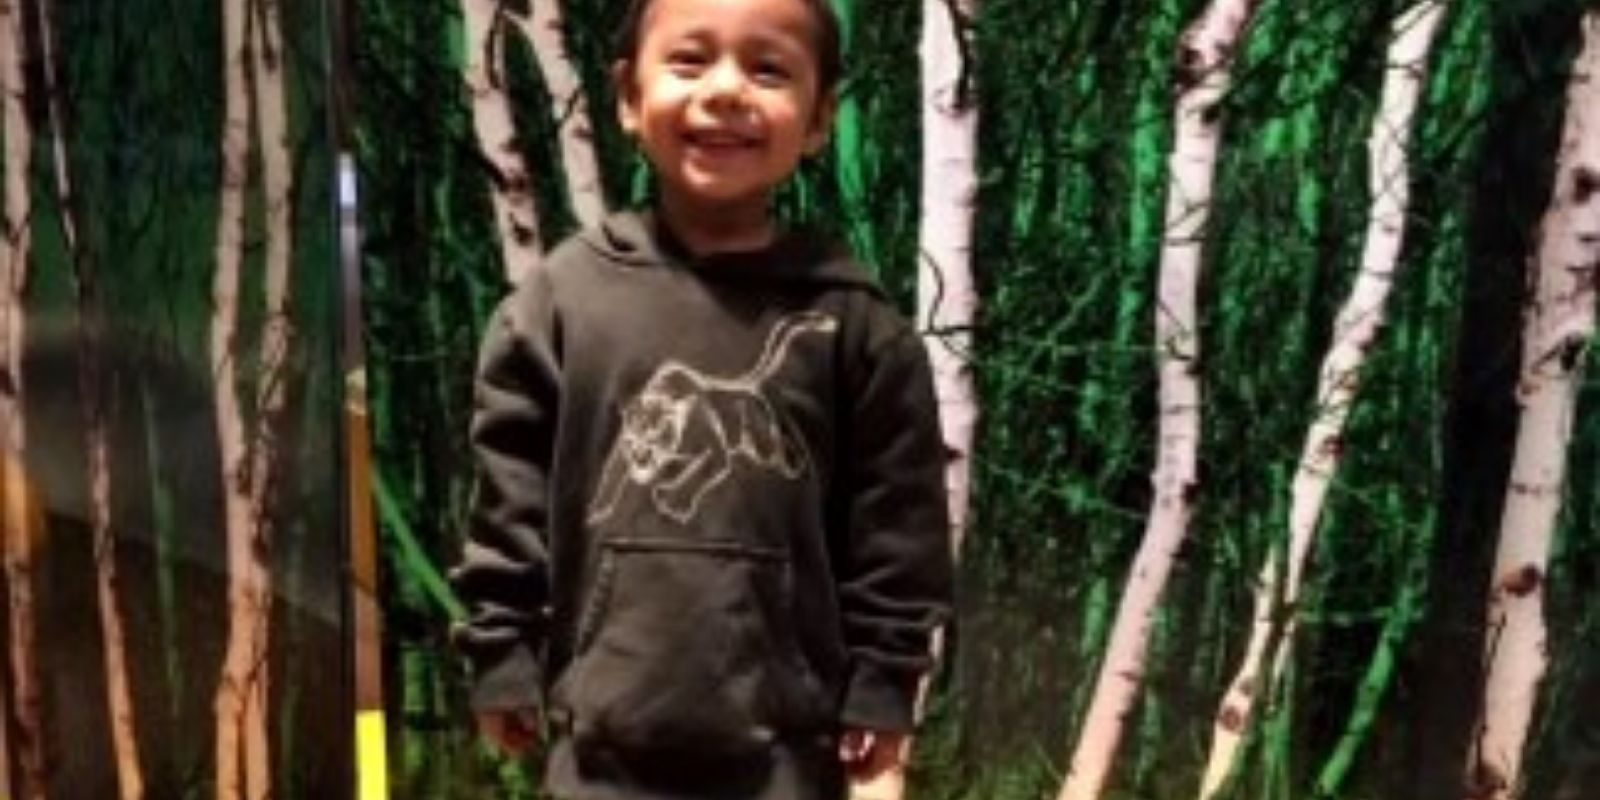 Winnipeg toddler stabbed while sleeping will be taken off life support